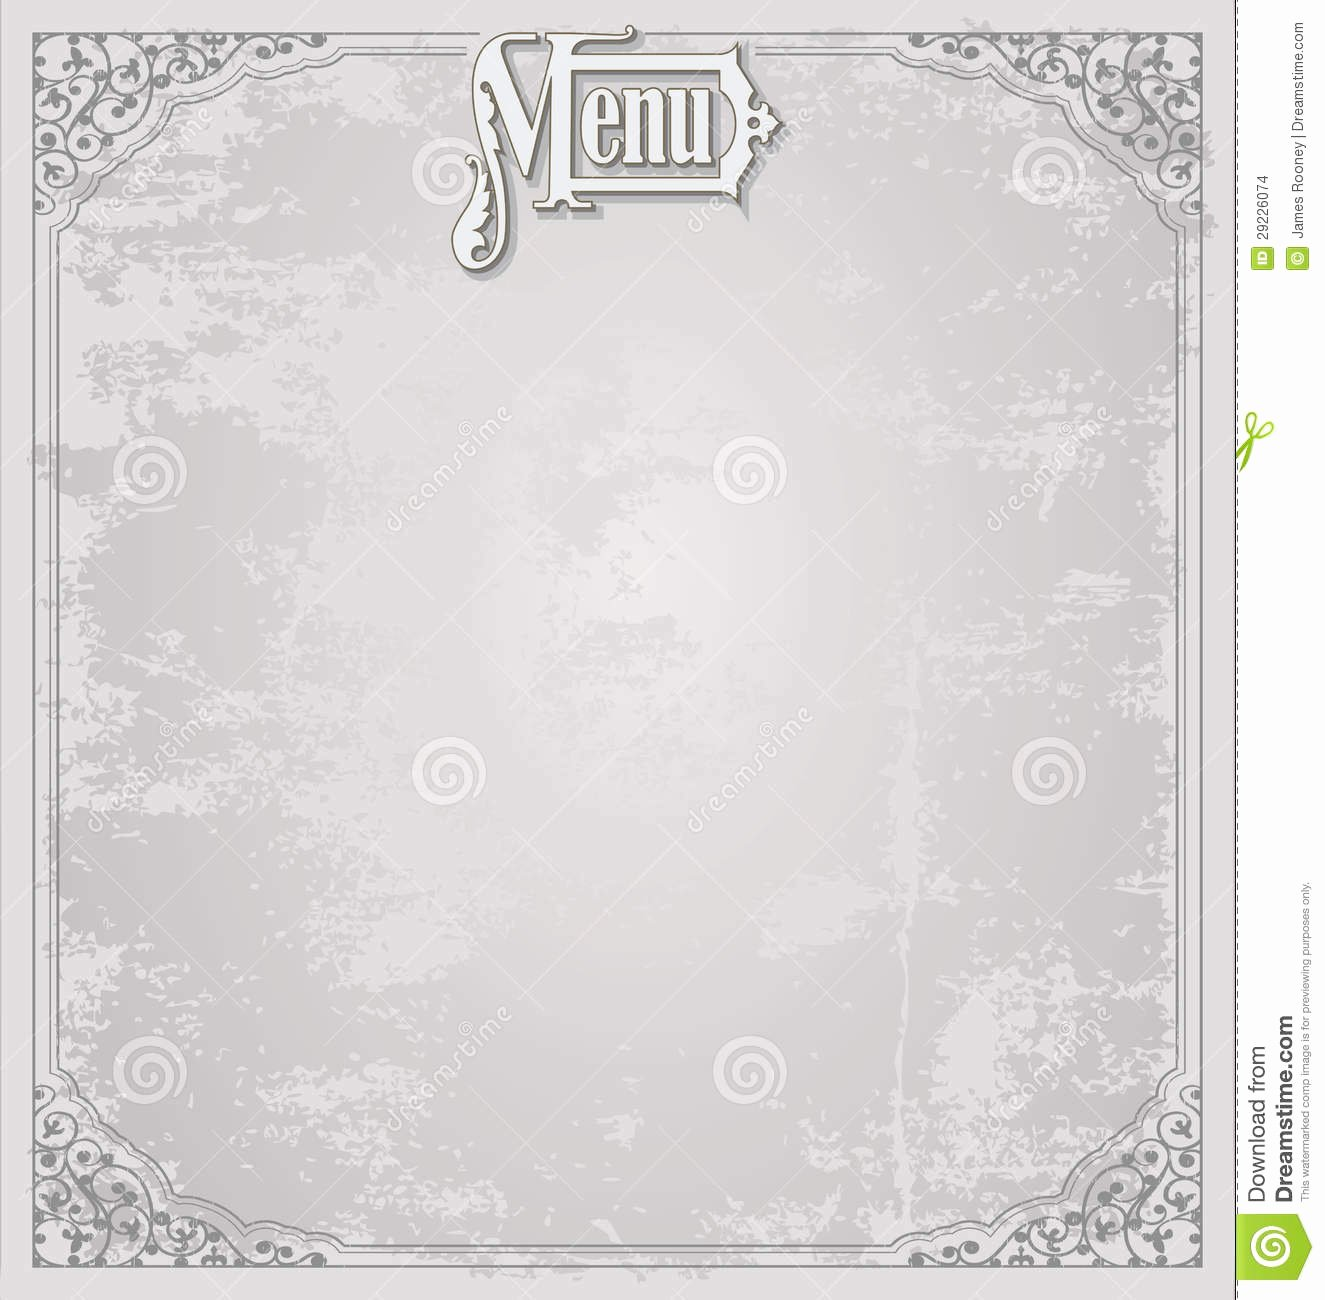 Blank Menu Template Free Luxury Menu Design Template Stock Illustration Illustration Of